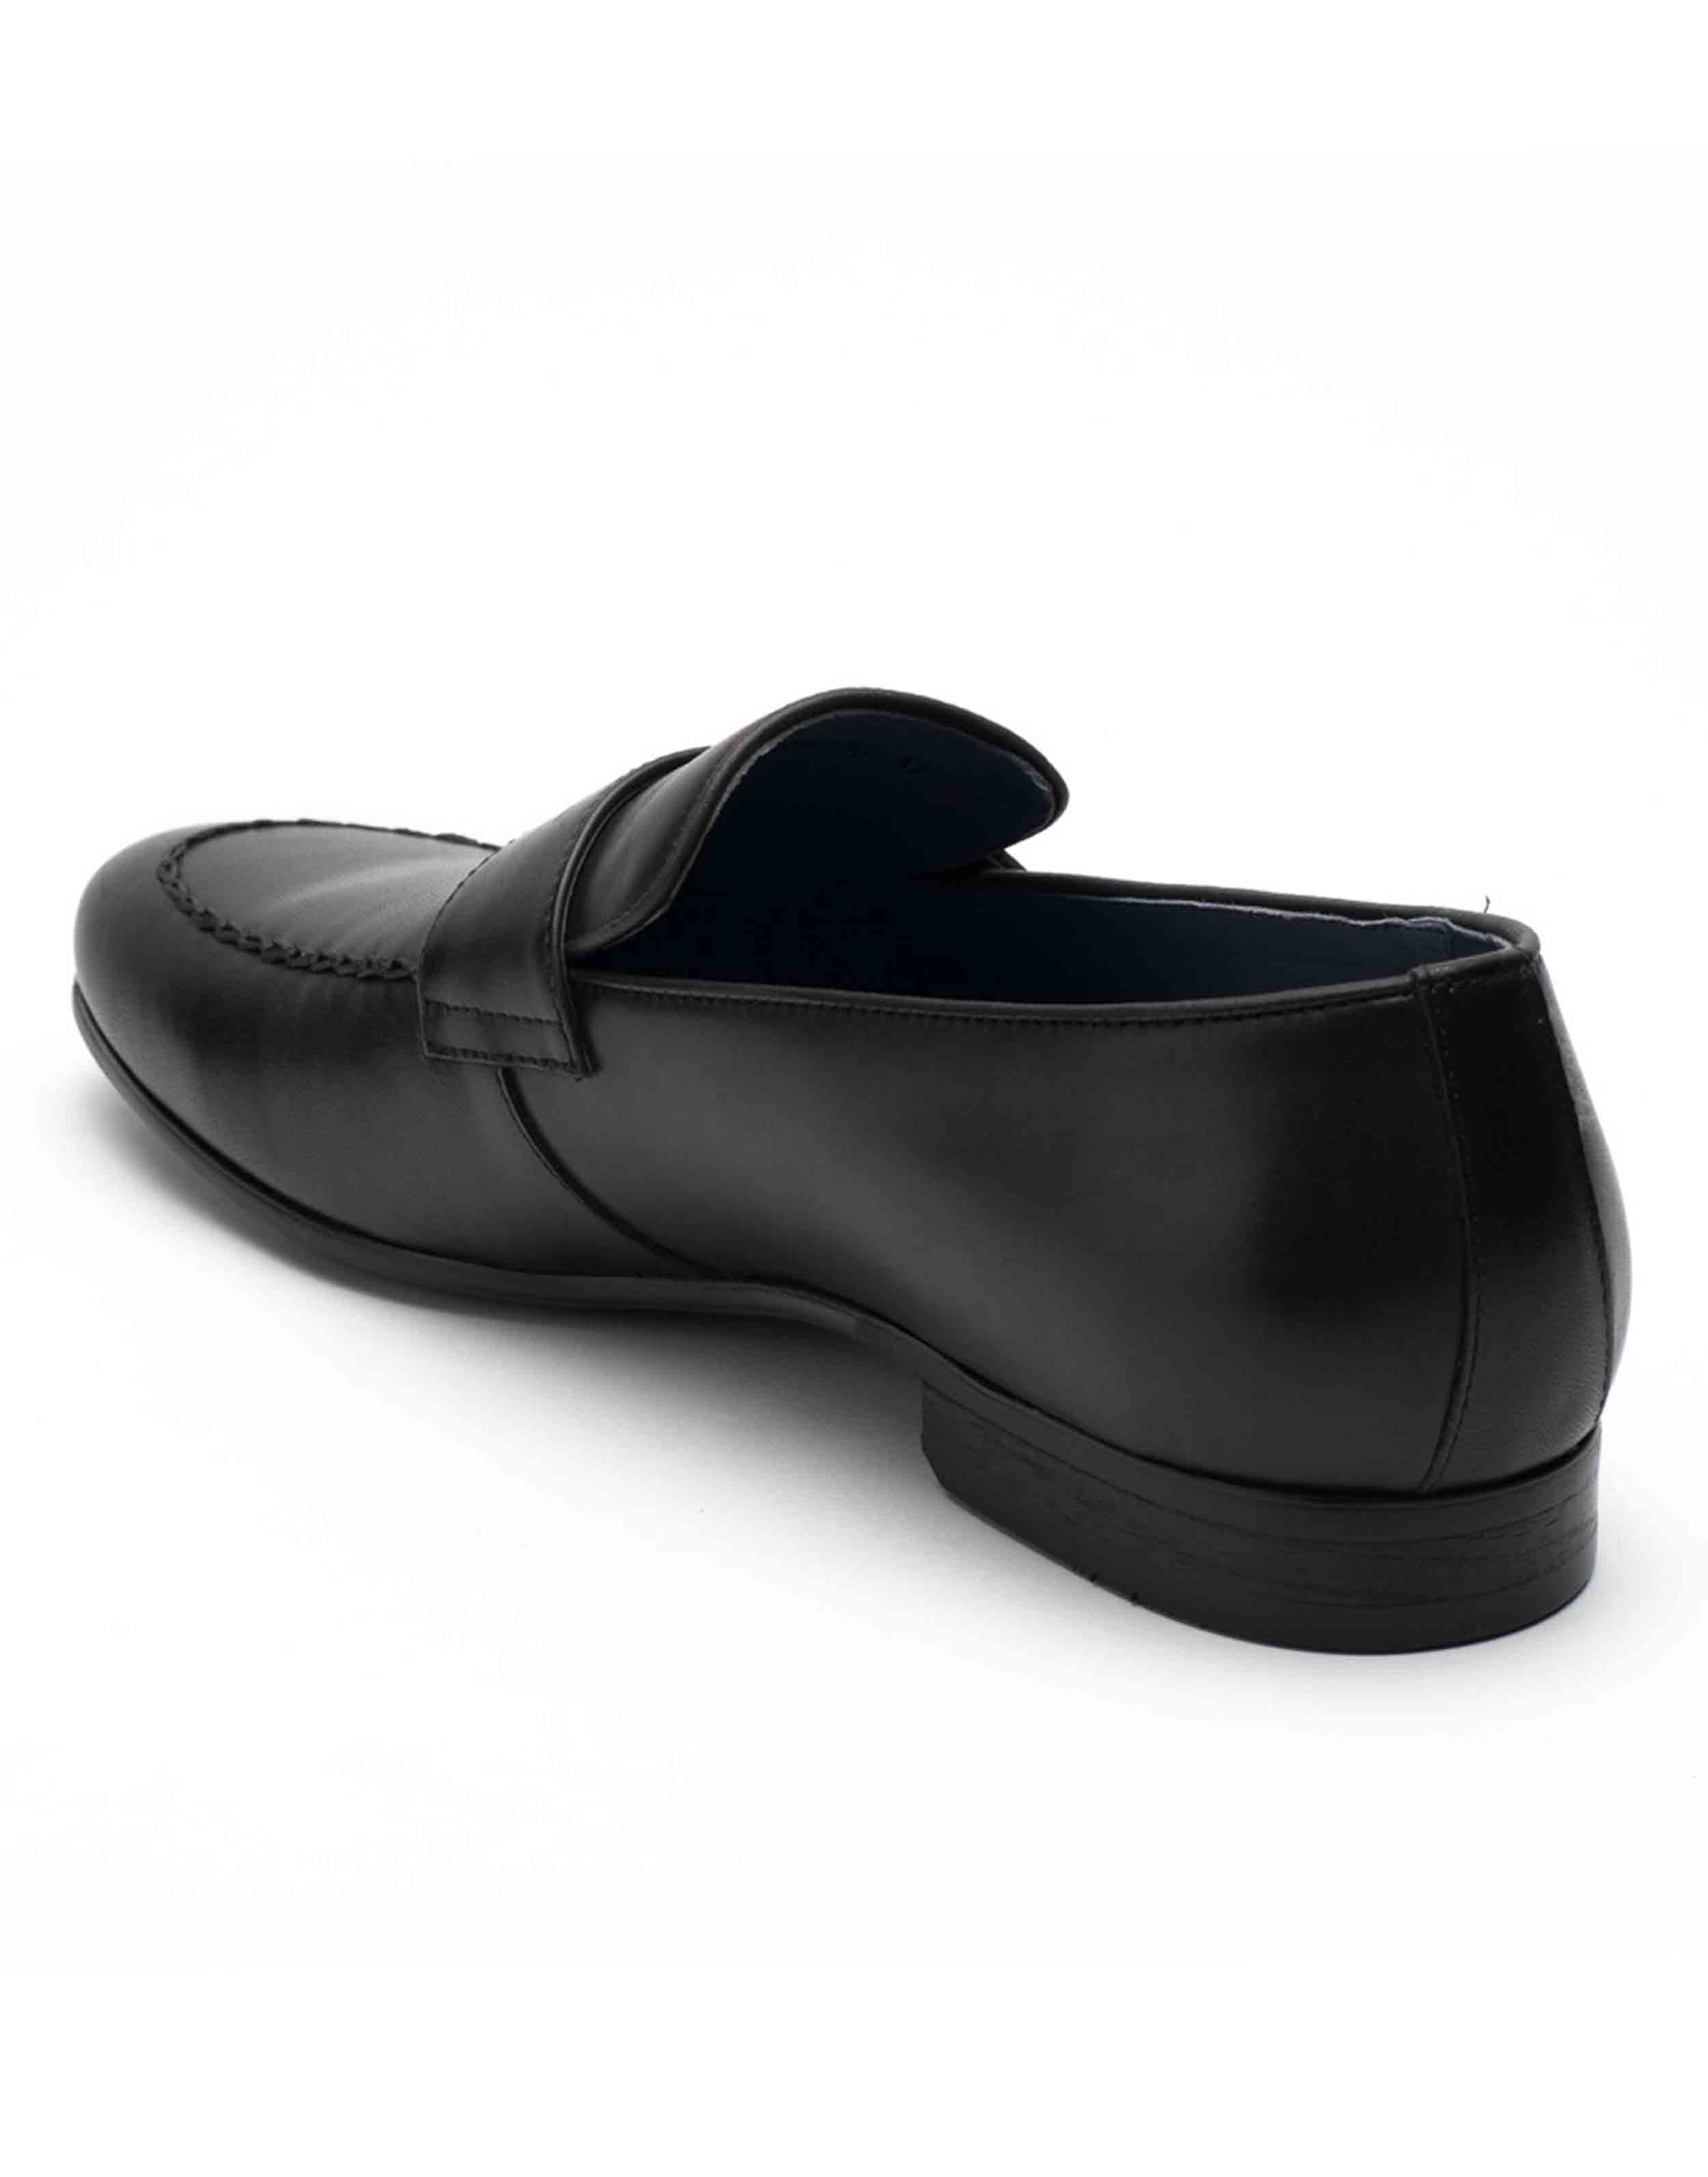 Heel _ Buckle London-HBDARM094-Diverse Black Penny Loafers-3